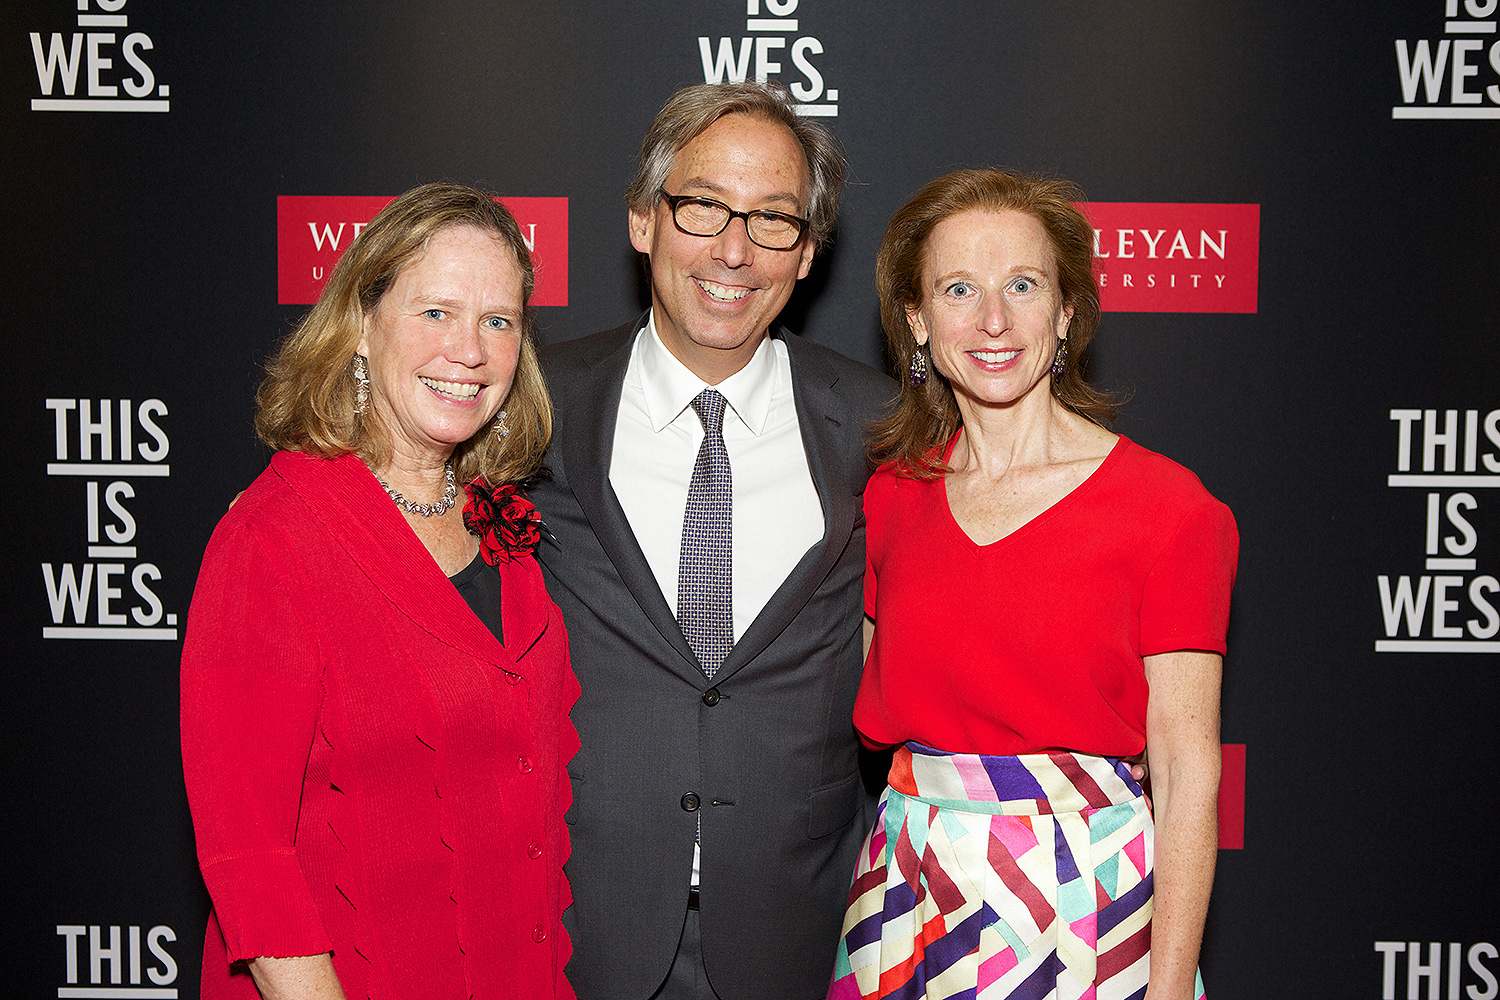 From left: Barbara-Jan Wilson, vice president for university relations; John Usdan '80, P'15, P'18, P'18; and Eva Usdan P'15, P'18, P'18.